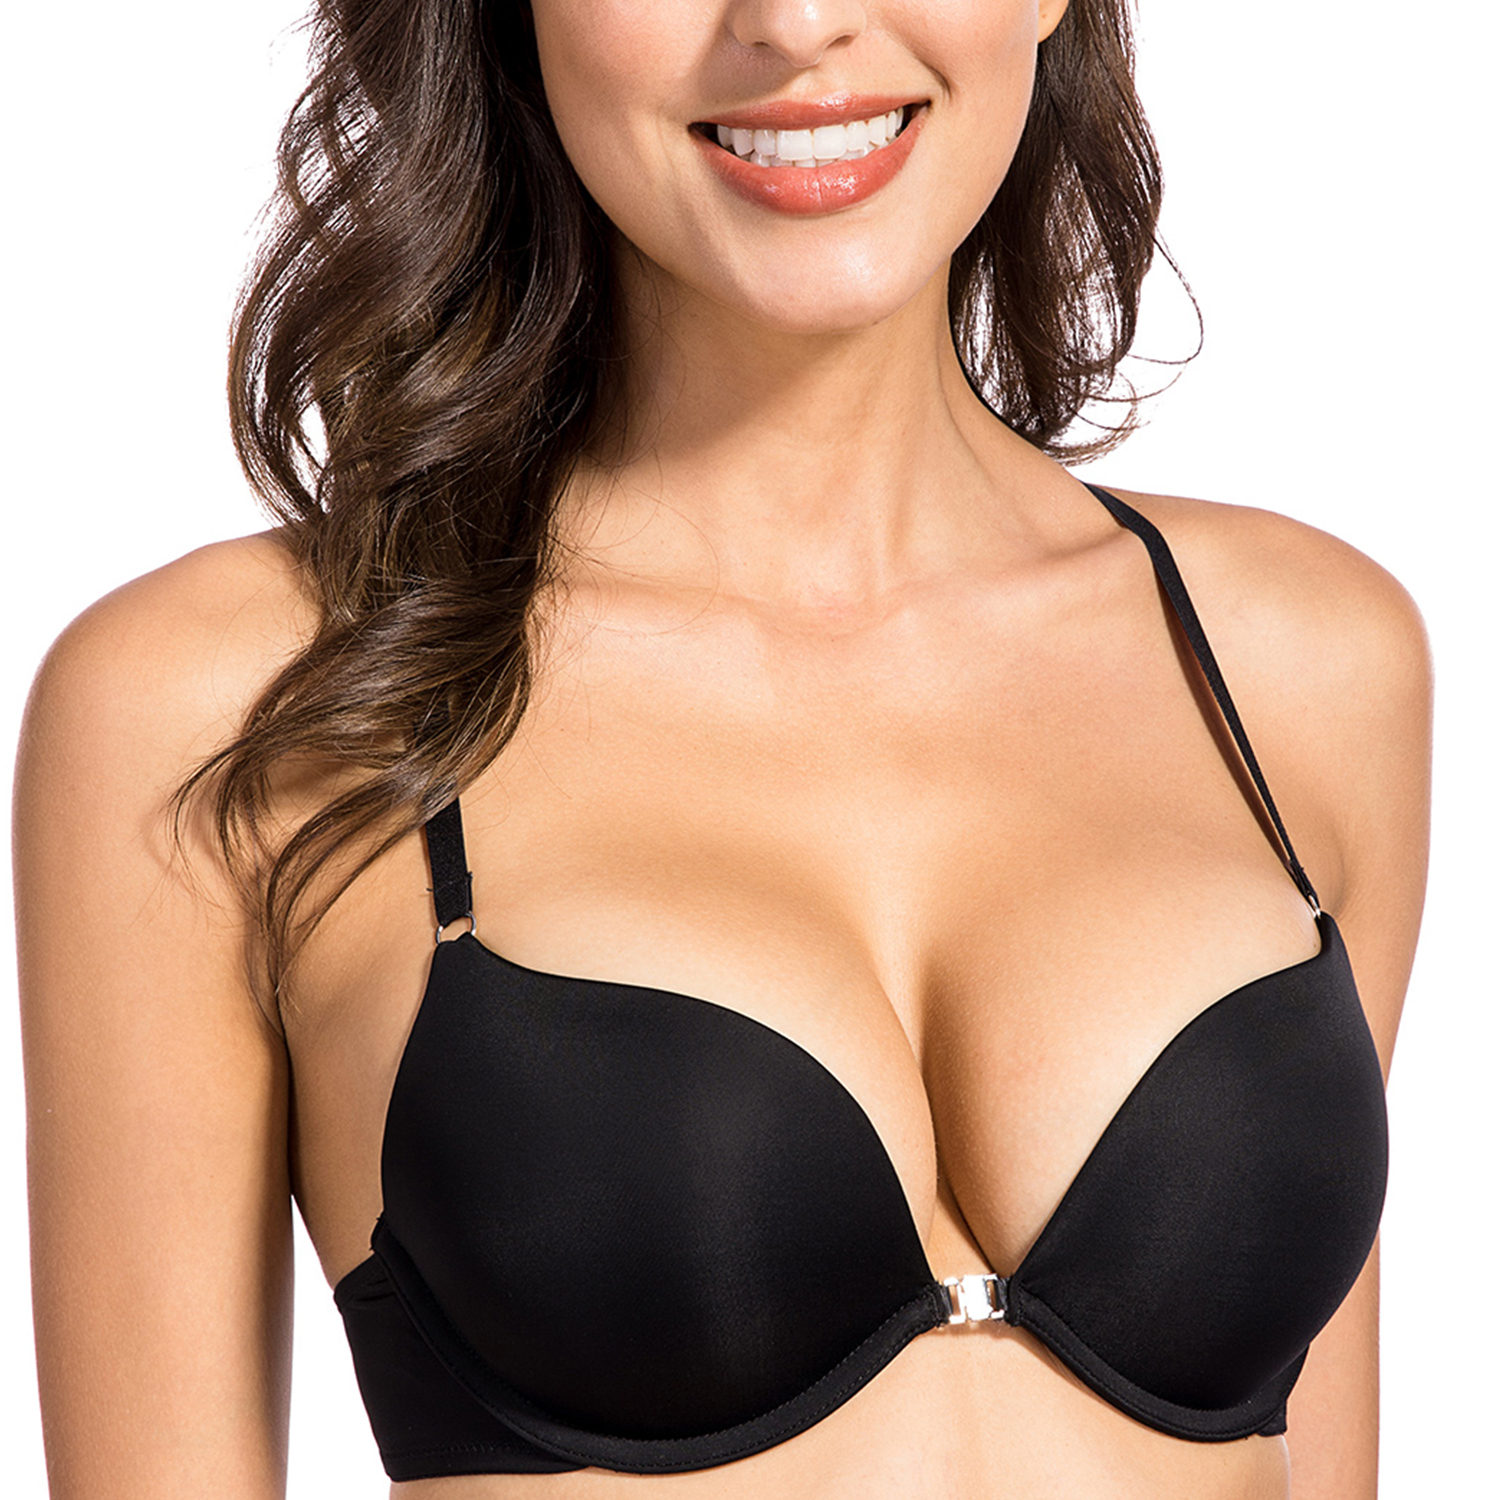 Women's Smooth Front Closure Underwire Push Up Plunge Everyday Bra Top